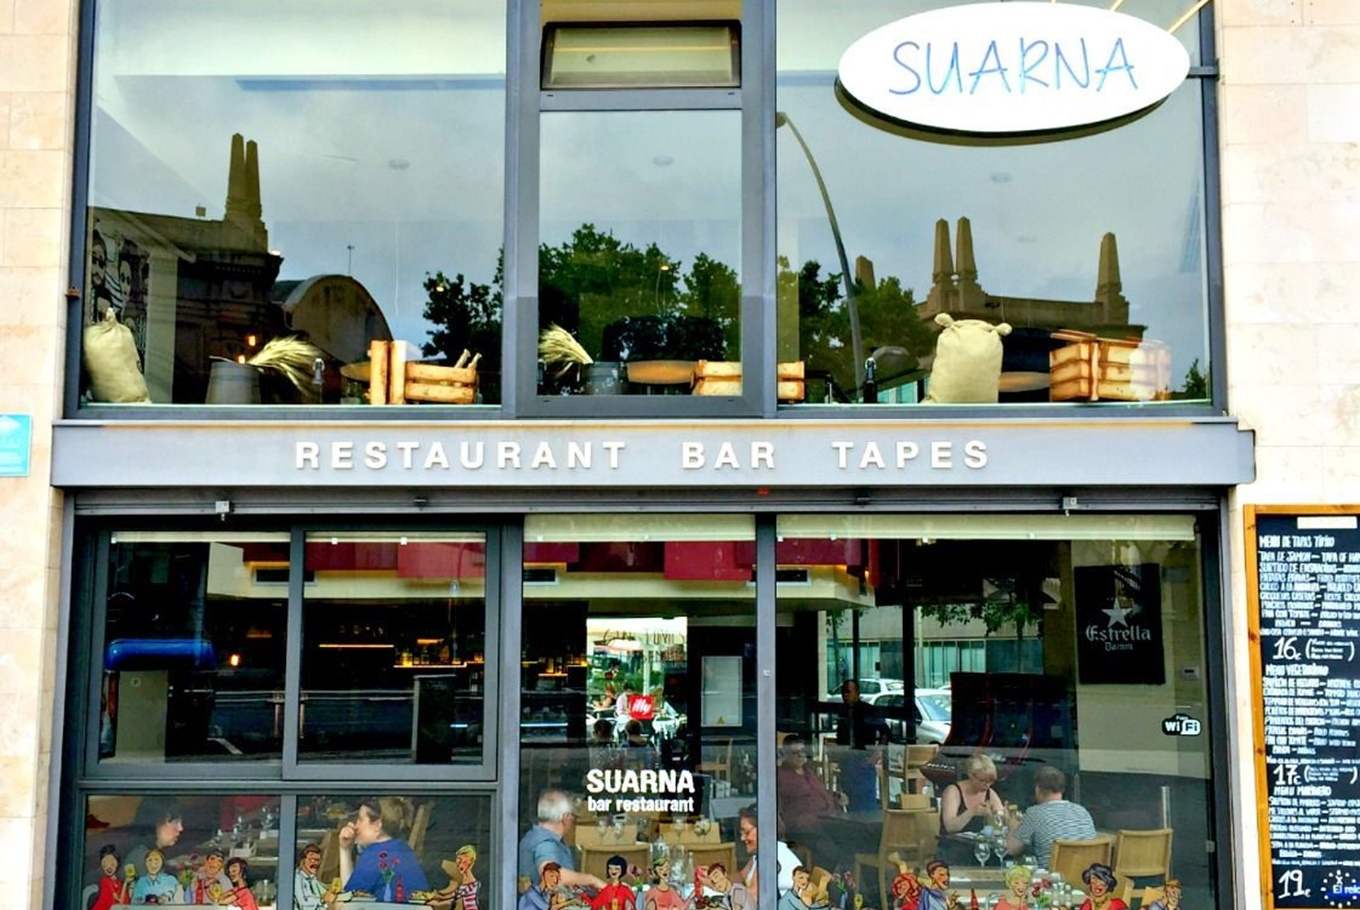 Suarna Bar Restaurant